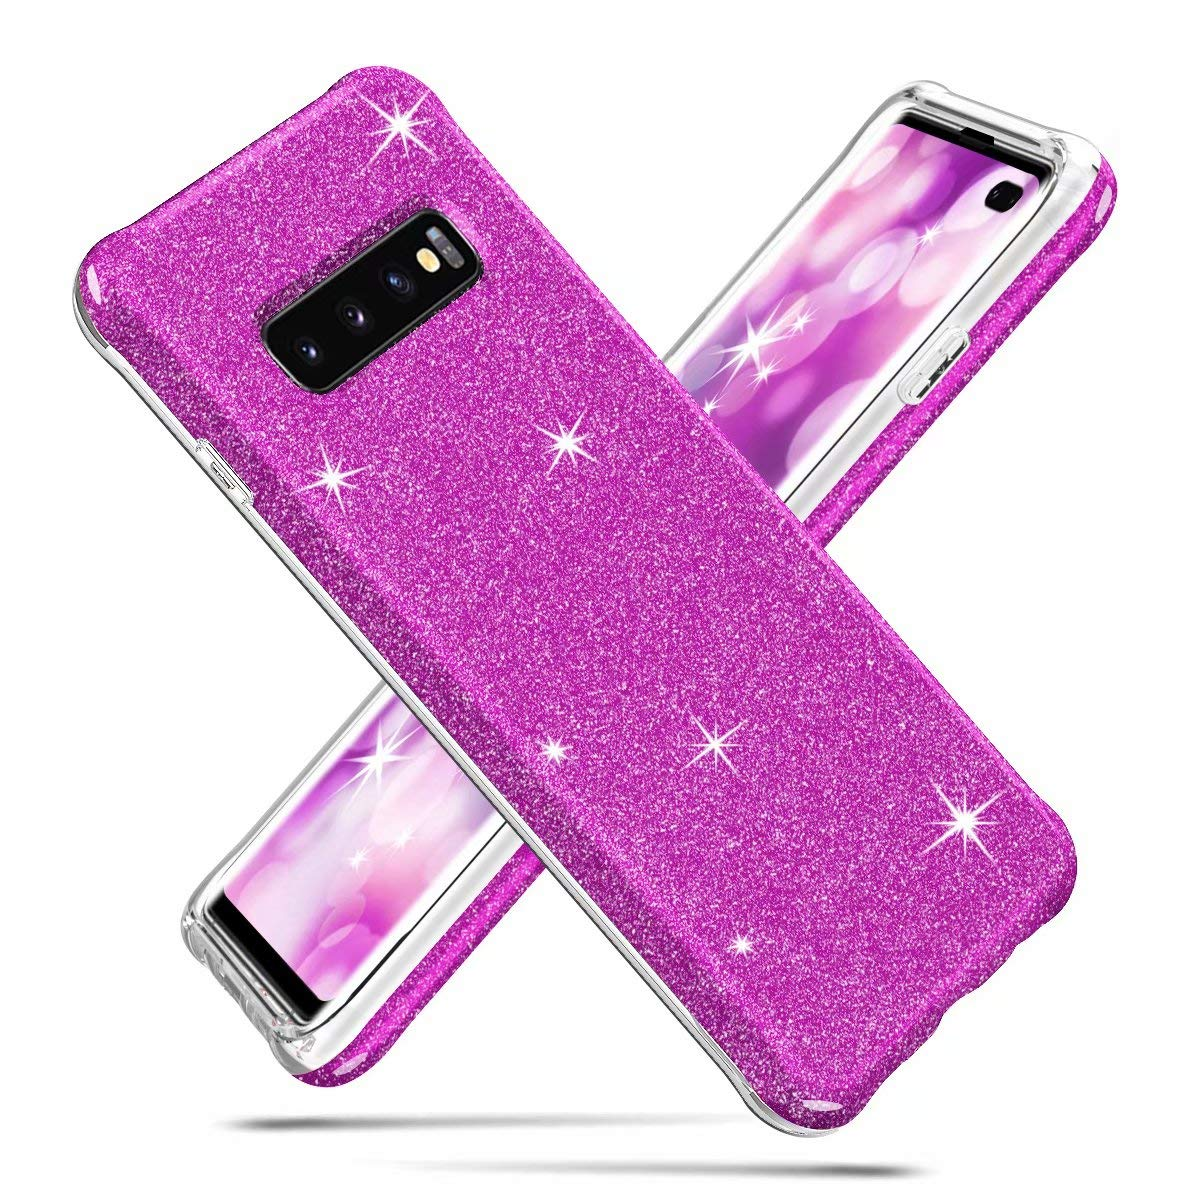 Galaxy S10 Plus Case, Ranyi Full Body Protective Crystal Transparent Cover Hybrid Bumper [Supported Wireless Charging] Shock Absorbing Flexible Resilient TPU Case for Samsung Galaxy S10 Plus (Purple) by Ranyi